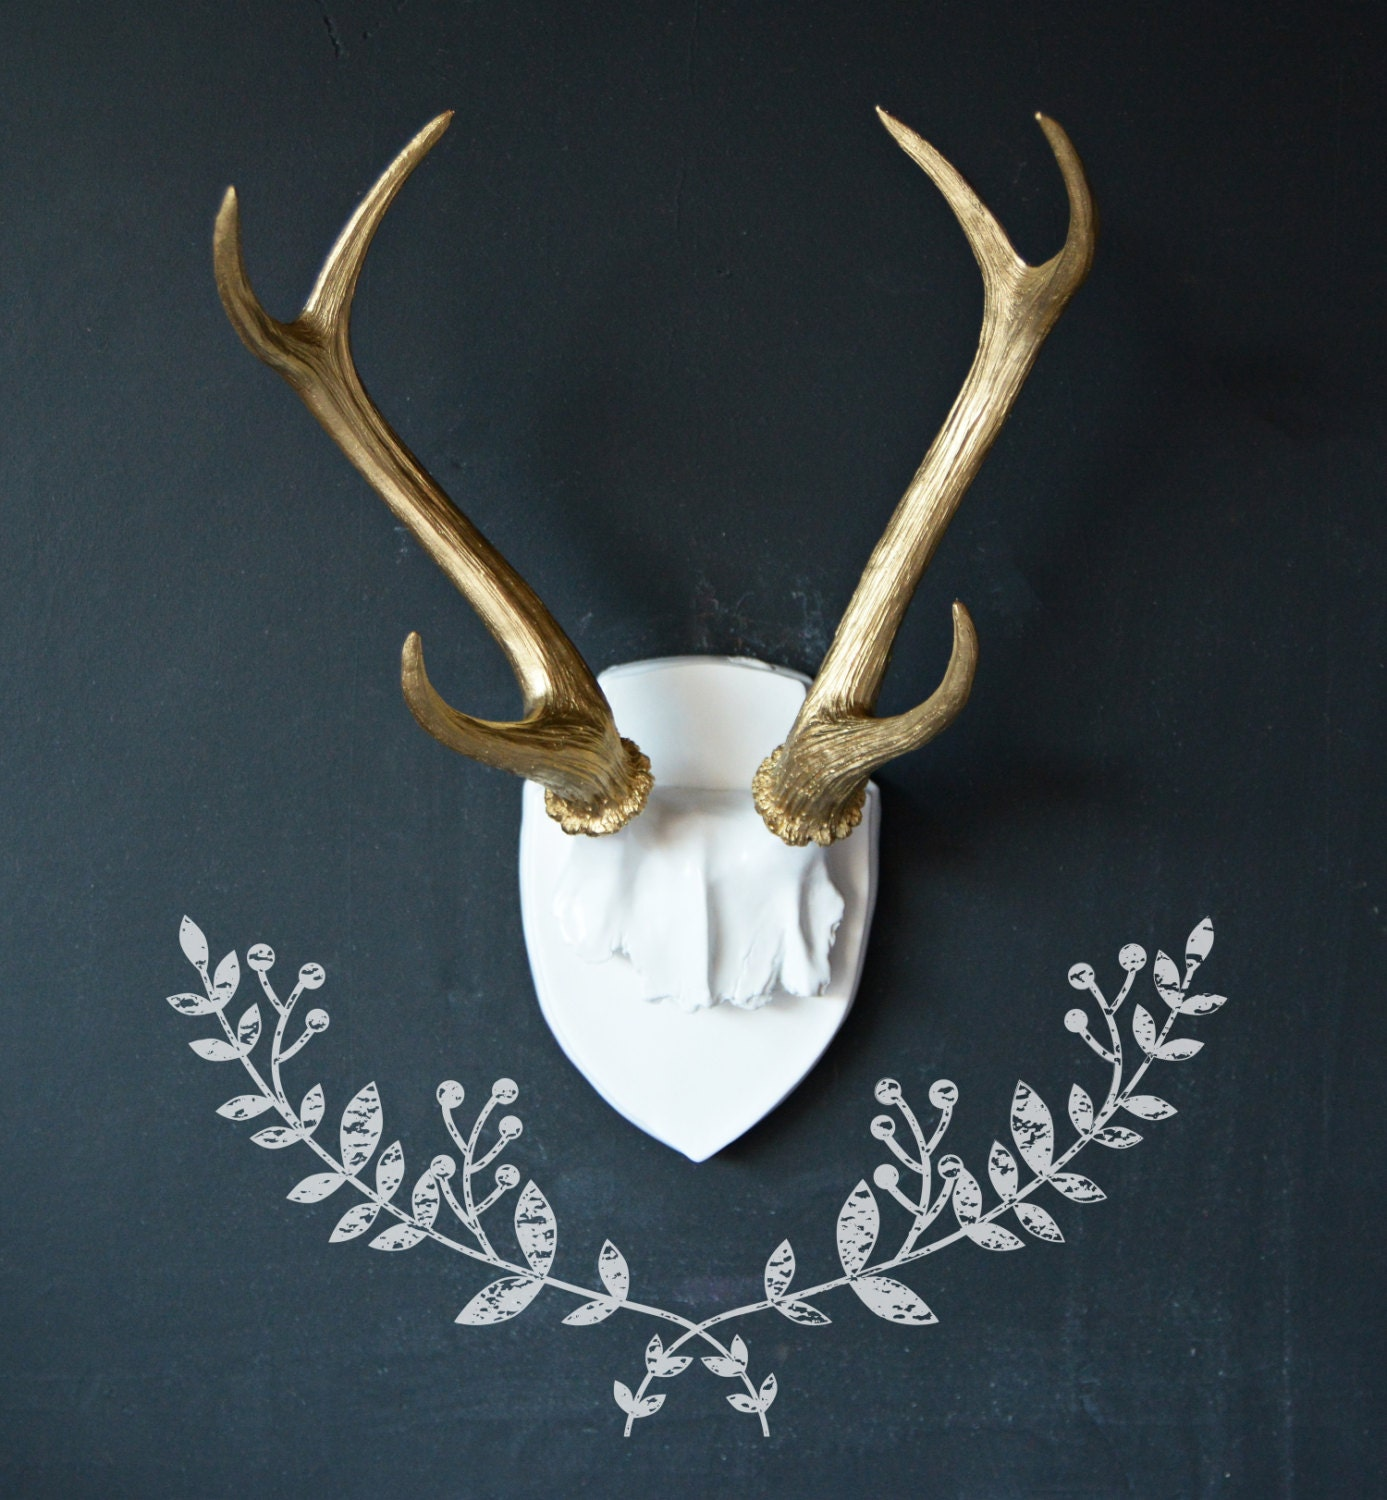 Large faux deer antler mount gold antlers home decor wall zoom amipublicfo Images